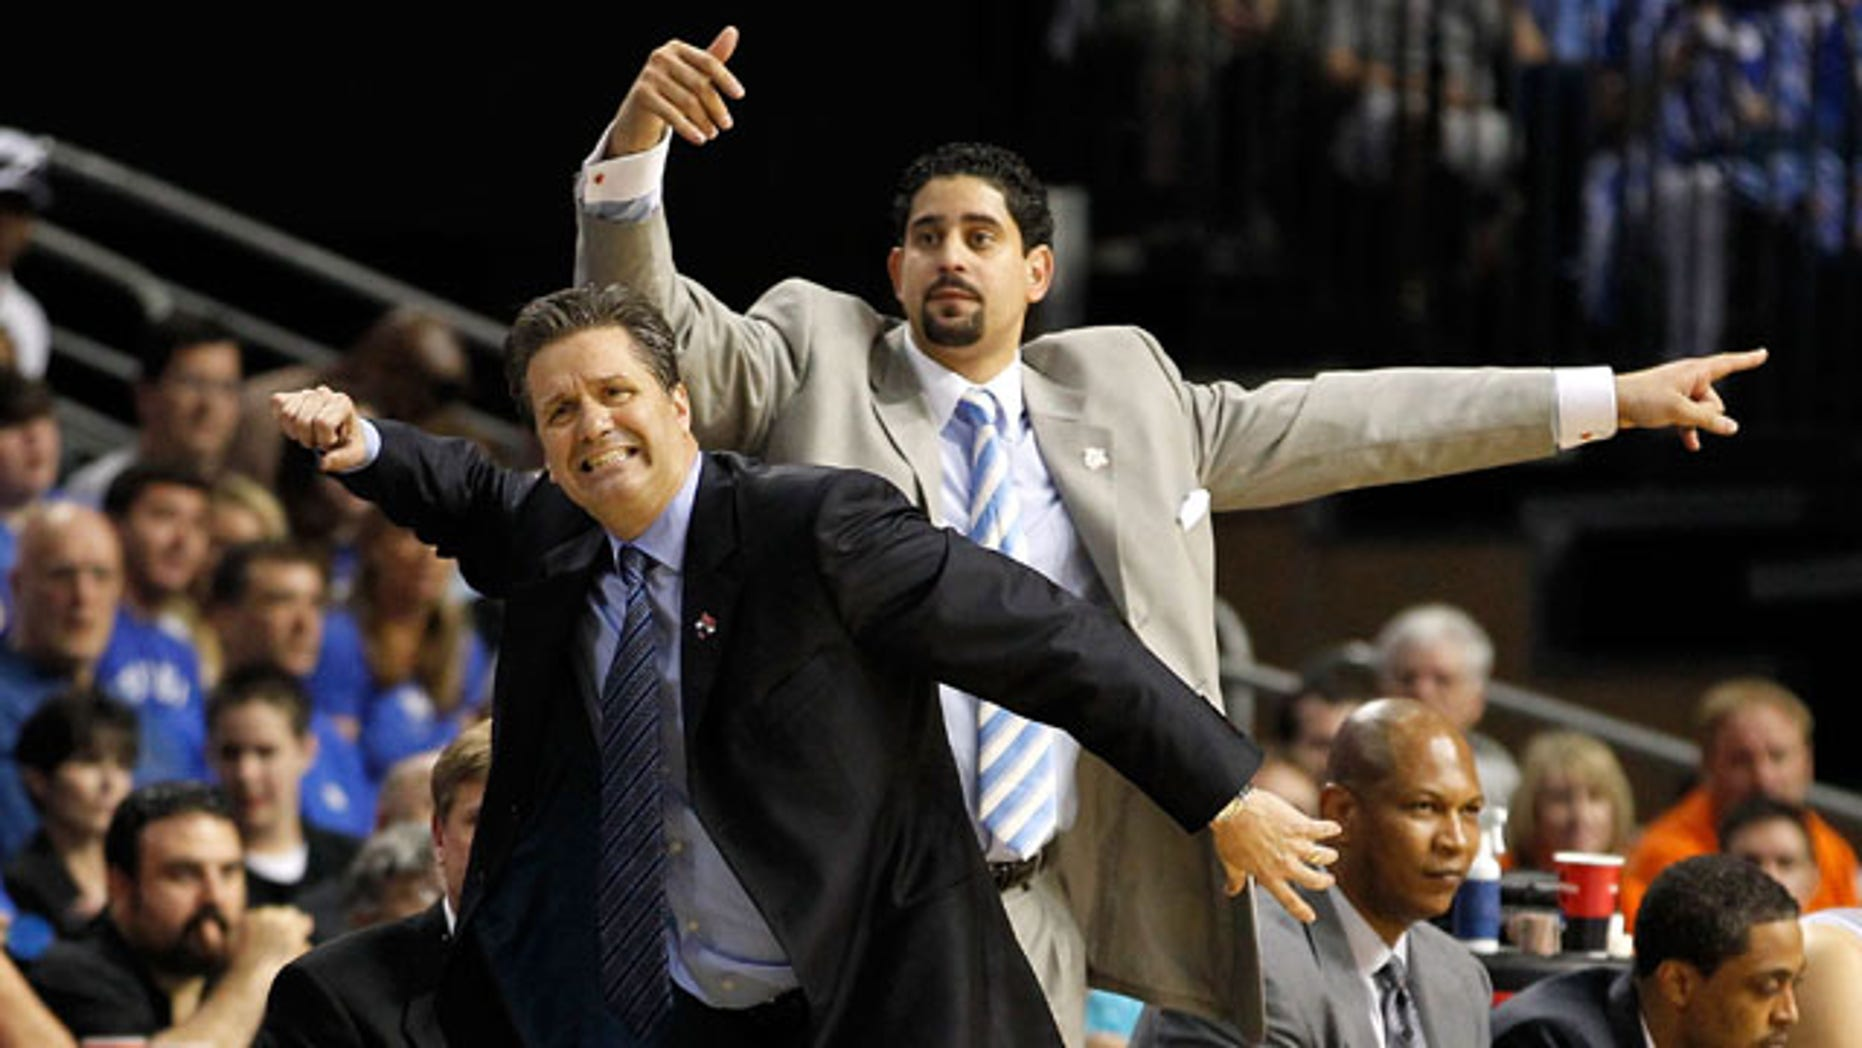 TAMPA, FL - MARCH 19:  (L-R)  Head coach John Calipari and assistant coach Orlando Antigua of the Kentucky Wildcats react as they coach against the West Virginia Mountaineers  during the third round of the 2011 NCAA men's basketball tournament at St. Pete Times Forum on March 19, 2011 in Tampa, Florida.  (Photo by J. Meric/Getty Images) *** Local Caption *** John Calipari; Orlando Antigua